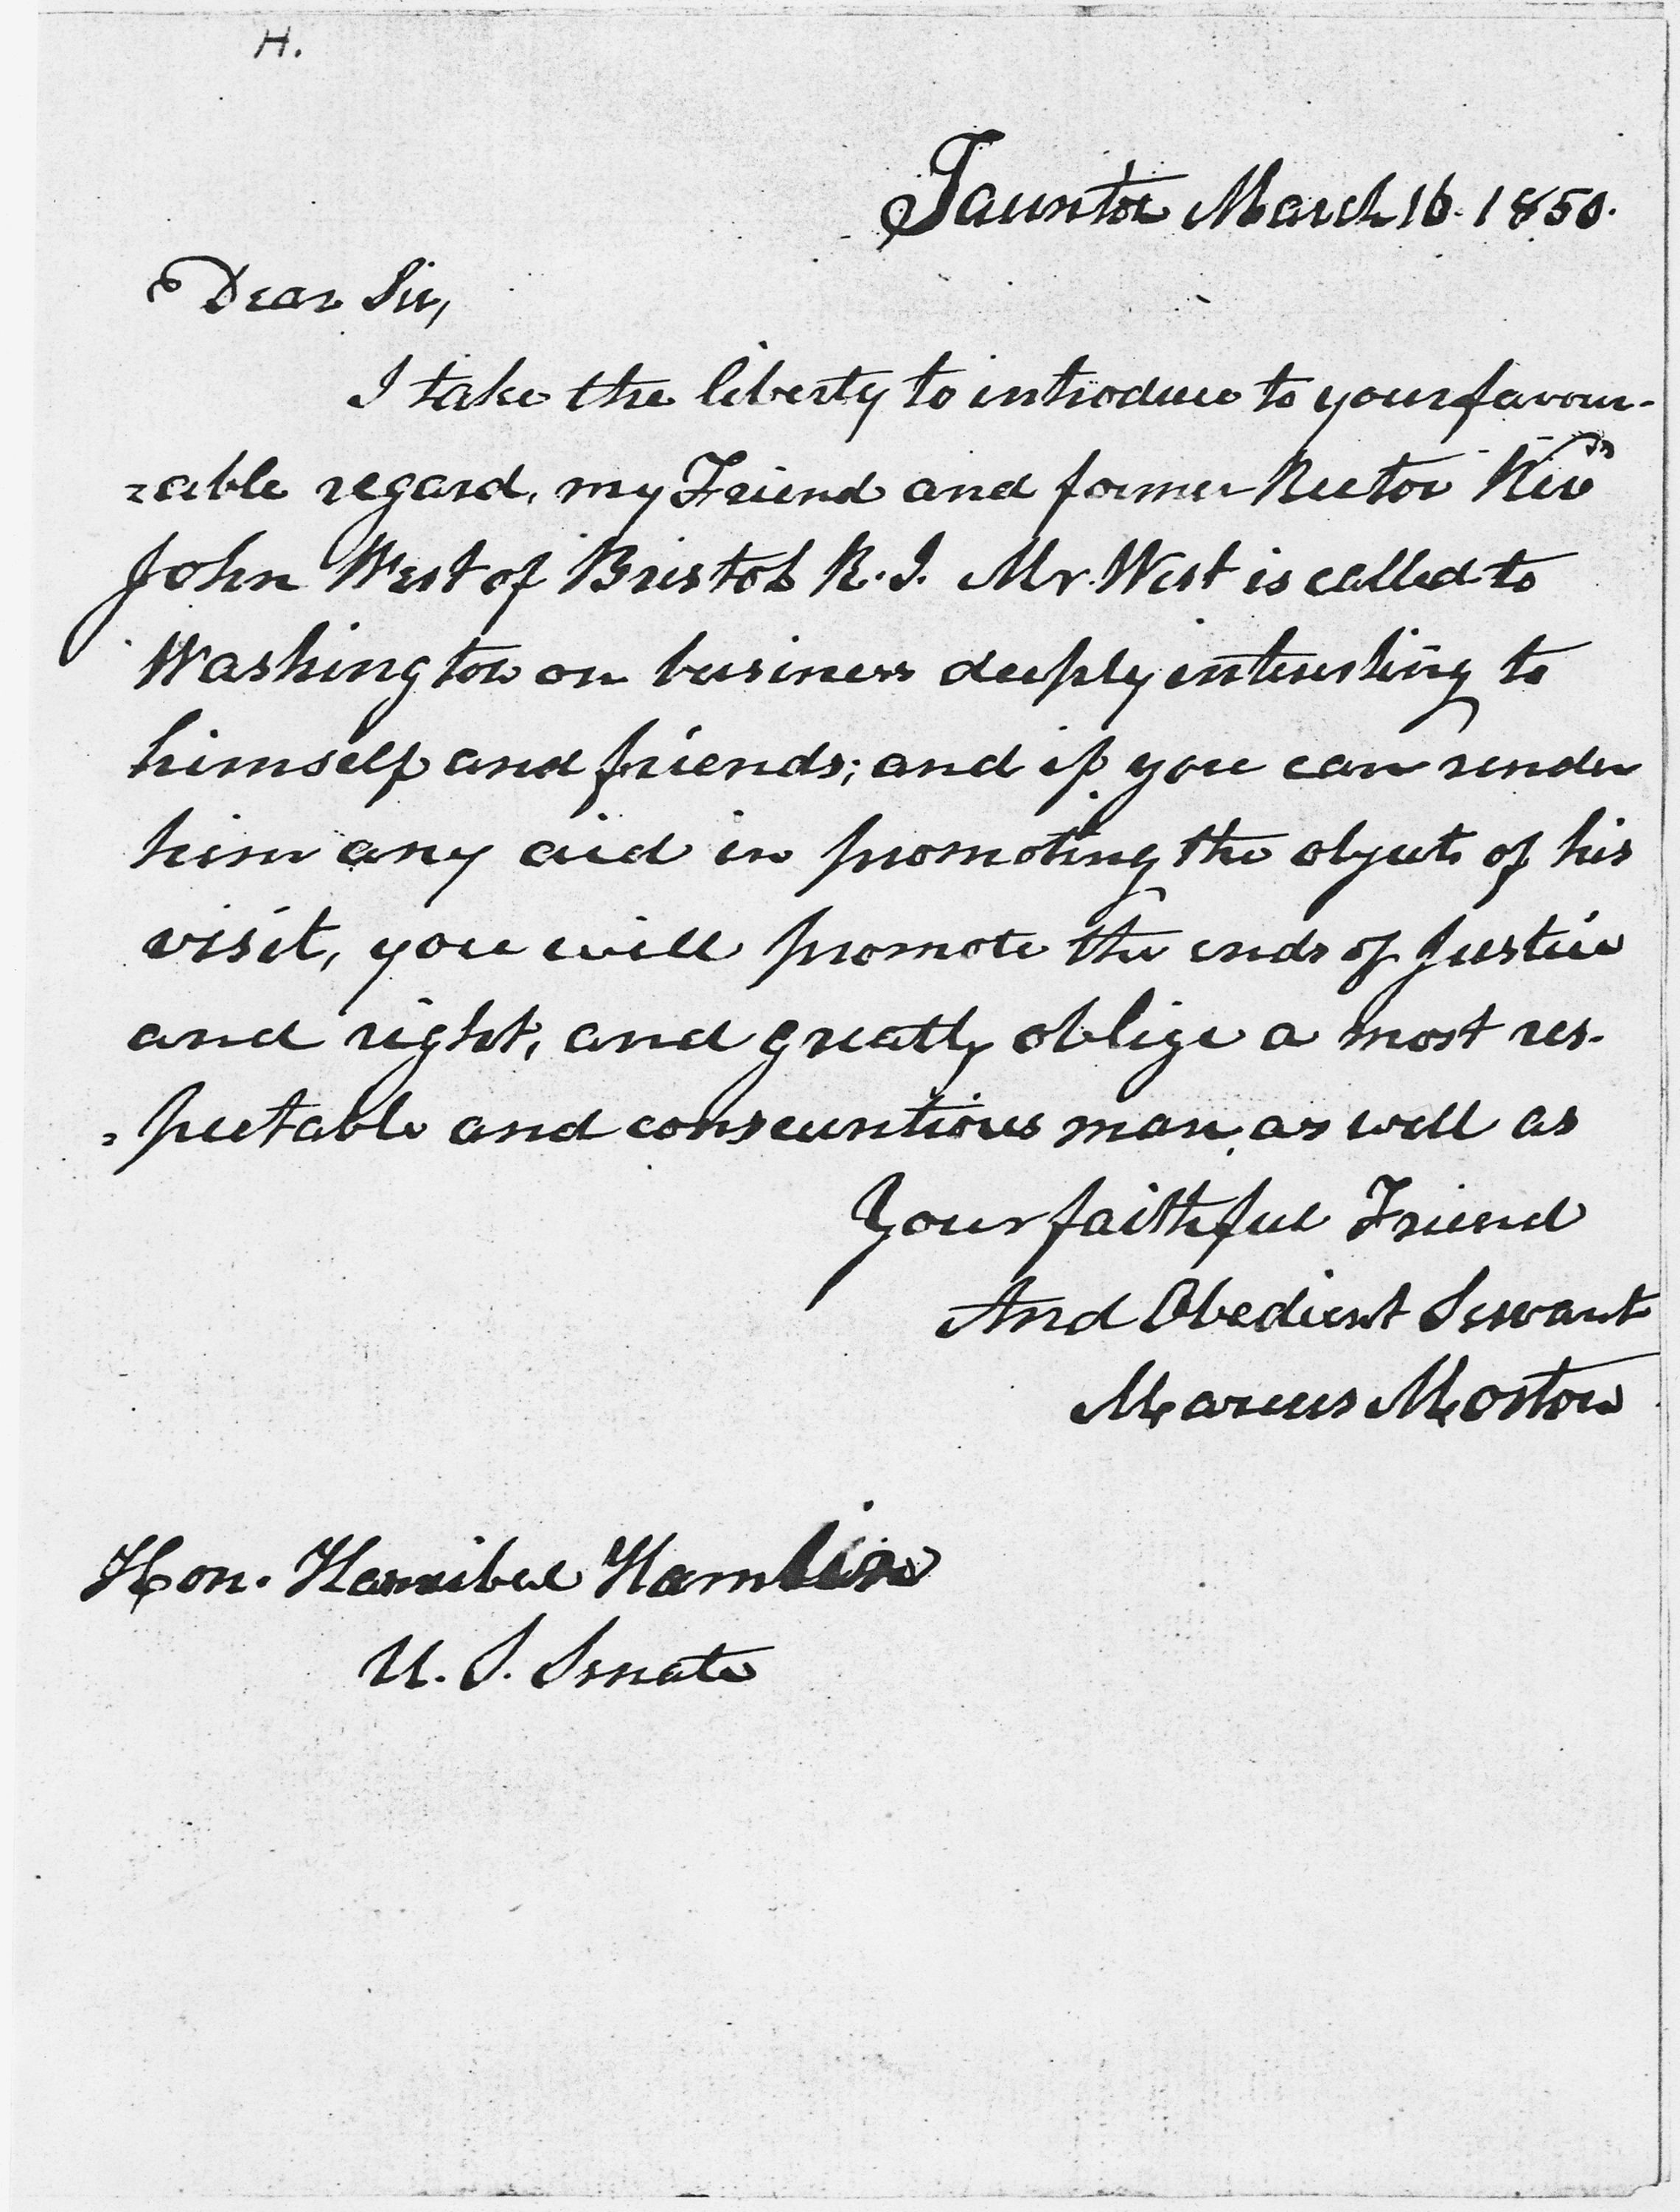 https://upload.wikimedia.org/wikipedia/commons/a/a7/Marcus_Morton_Letter_to_Hannibal_Hamlin_March_16%2C_1850_-_NARA_-_192994.jpg